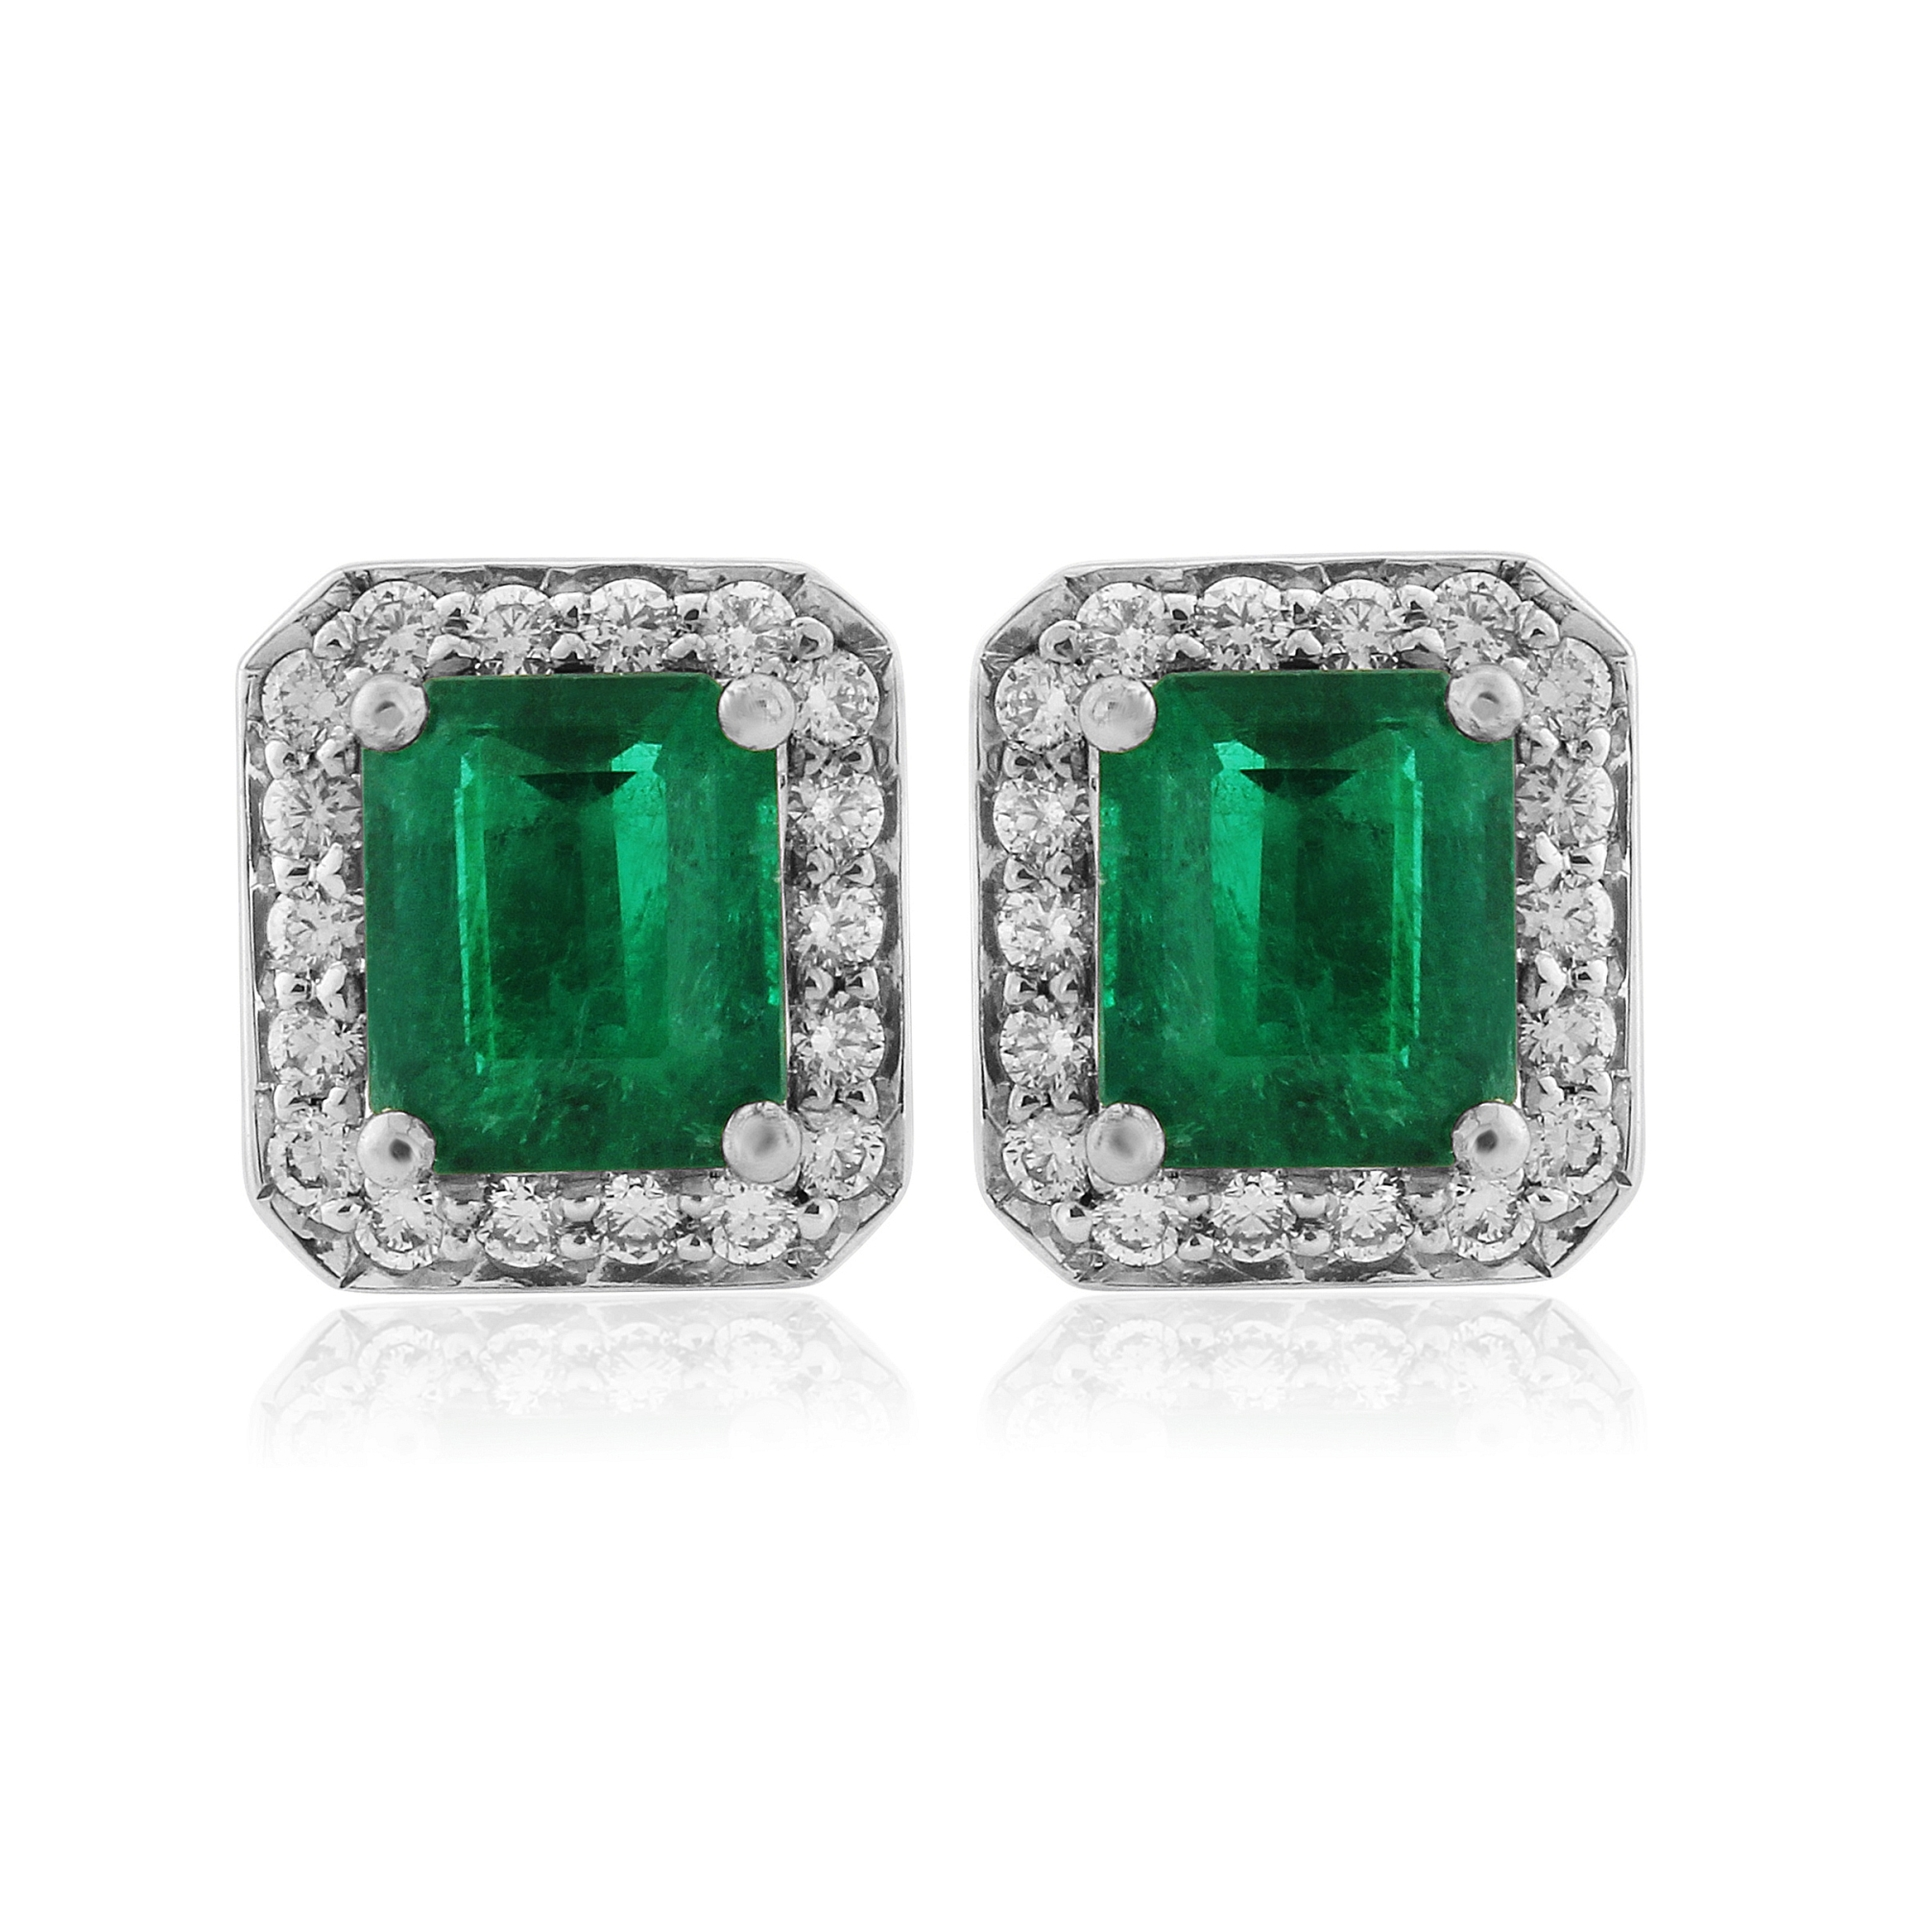 18ct White Gold Octagonal Emerald and Diamond Earrings